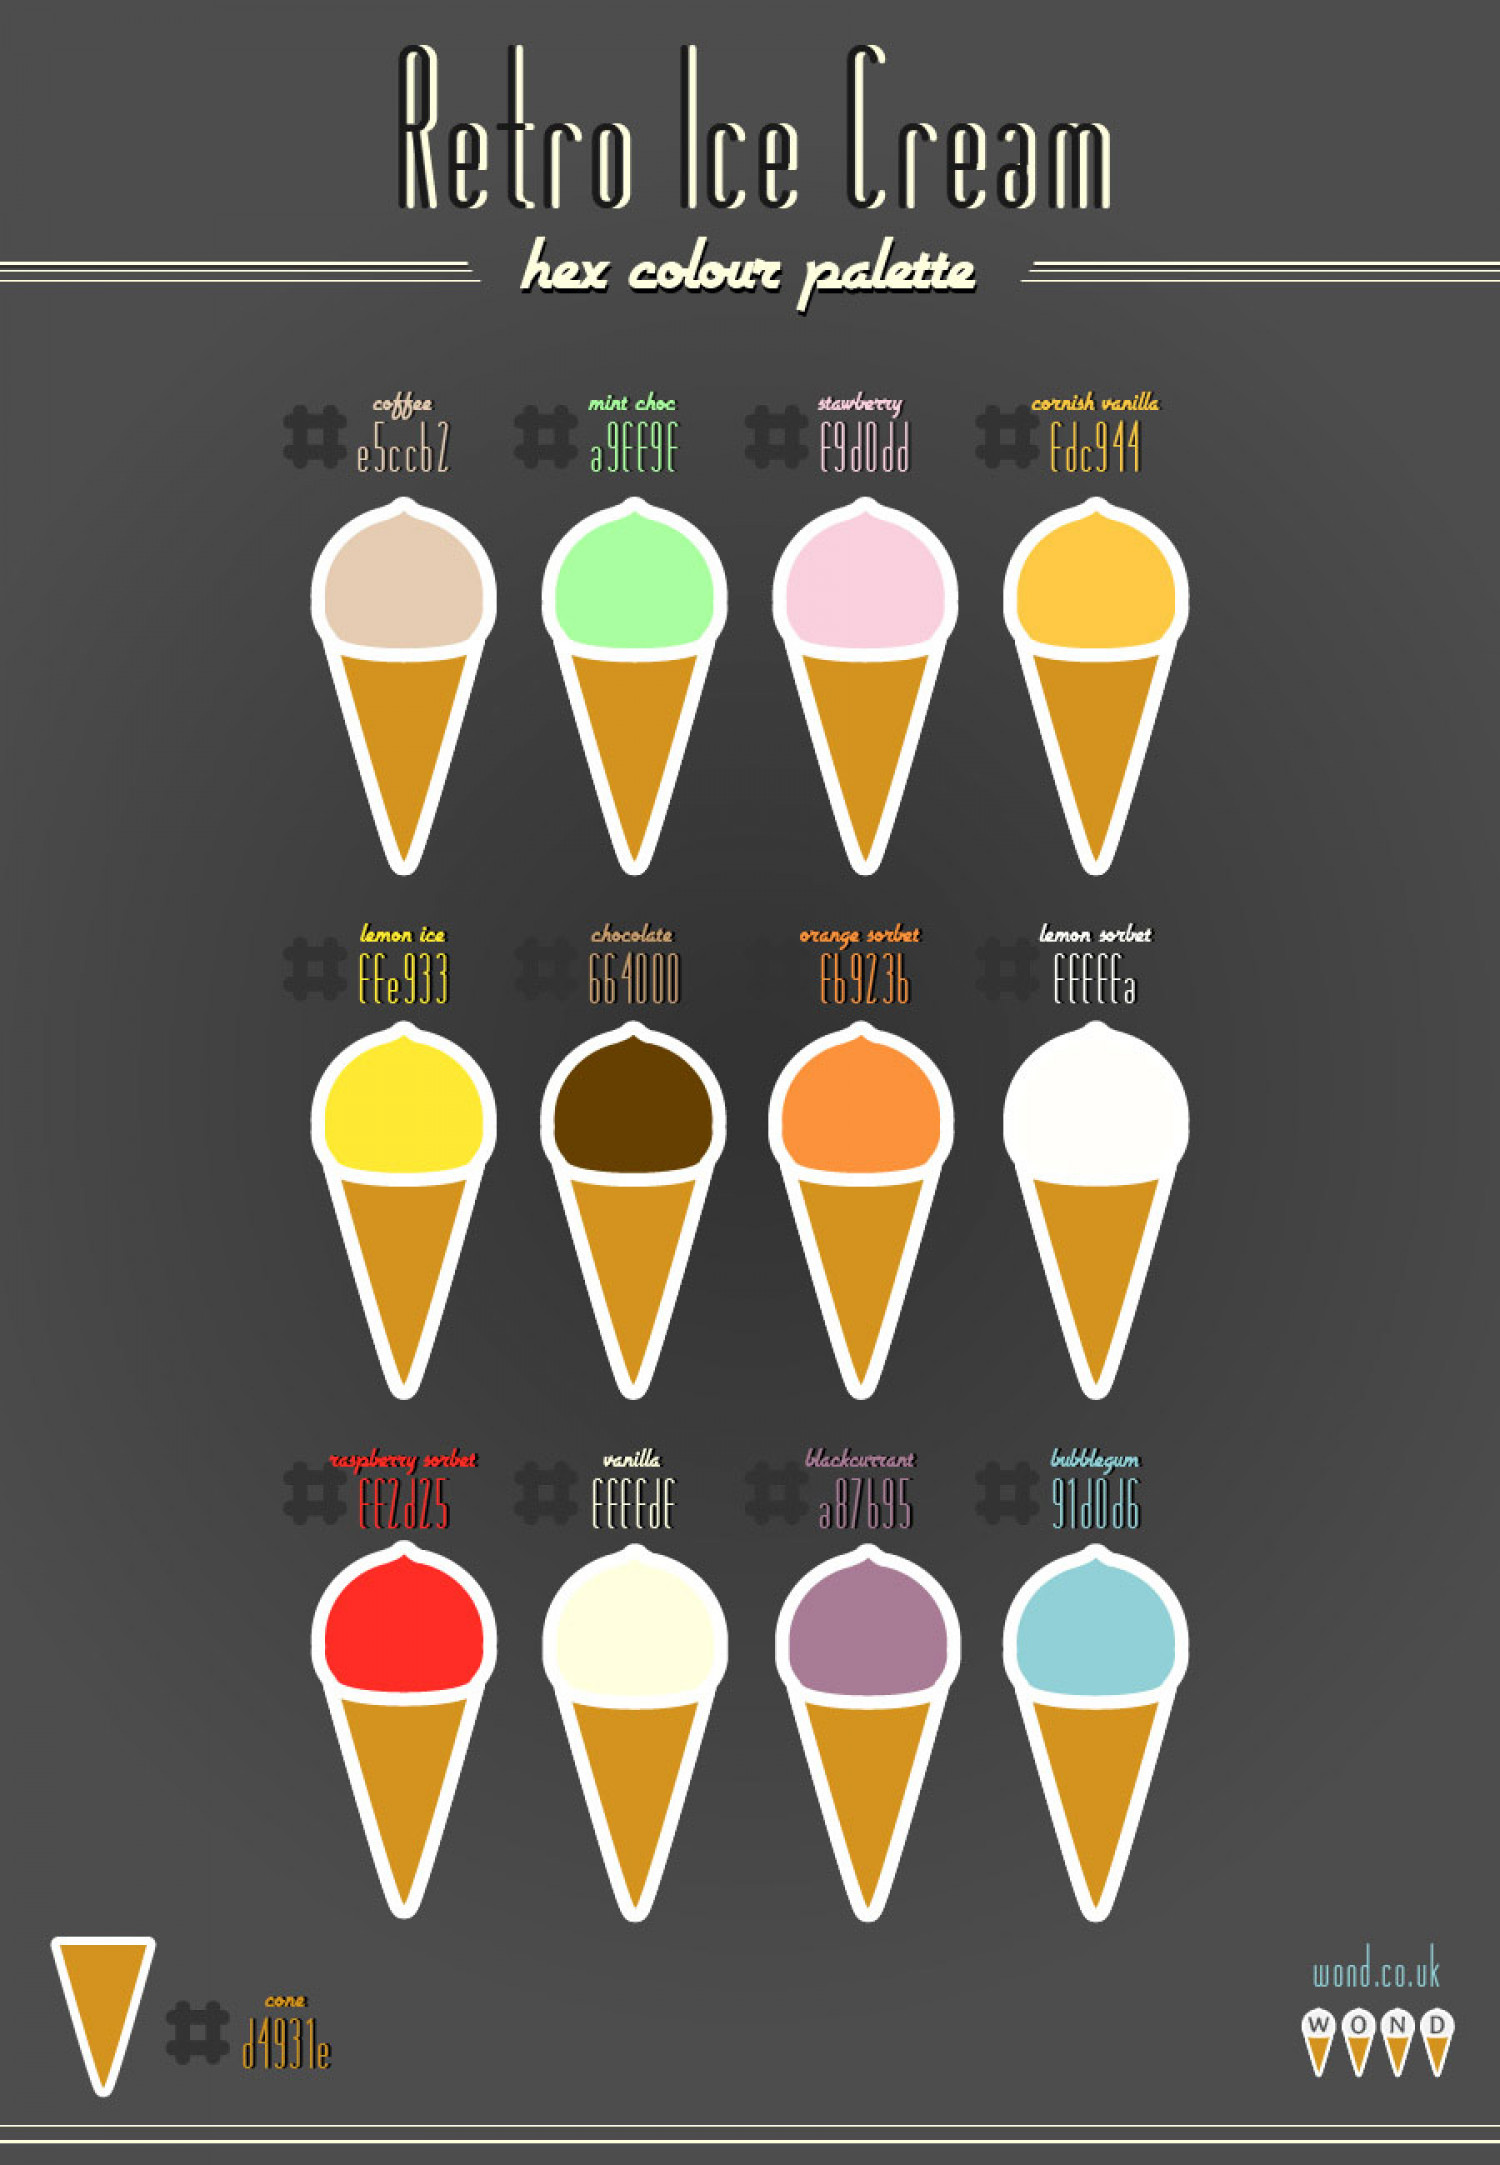 Retro Ice Cream Colour Palette Infographic